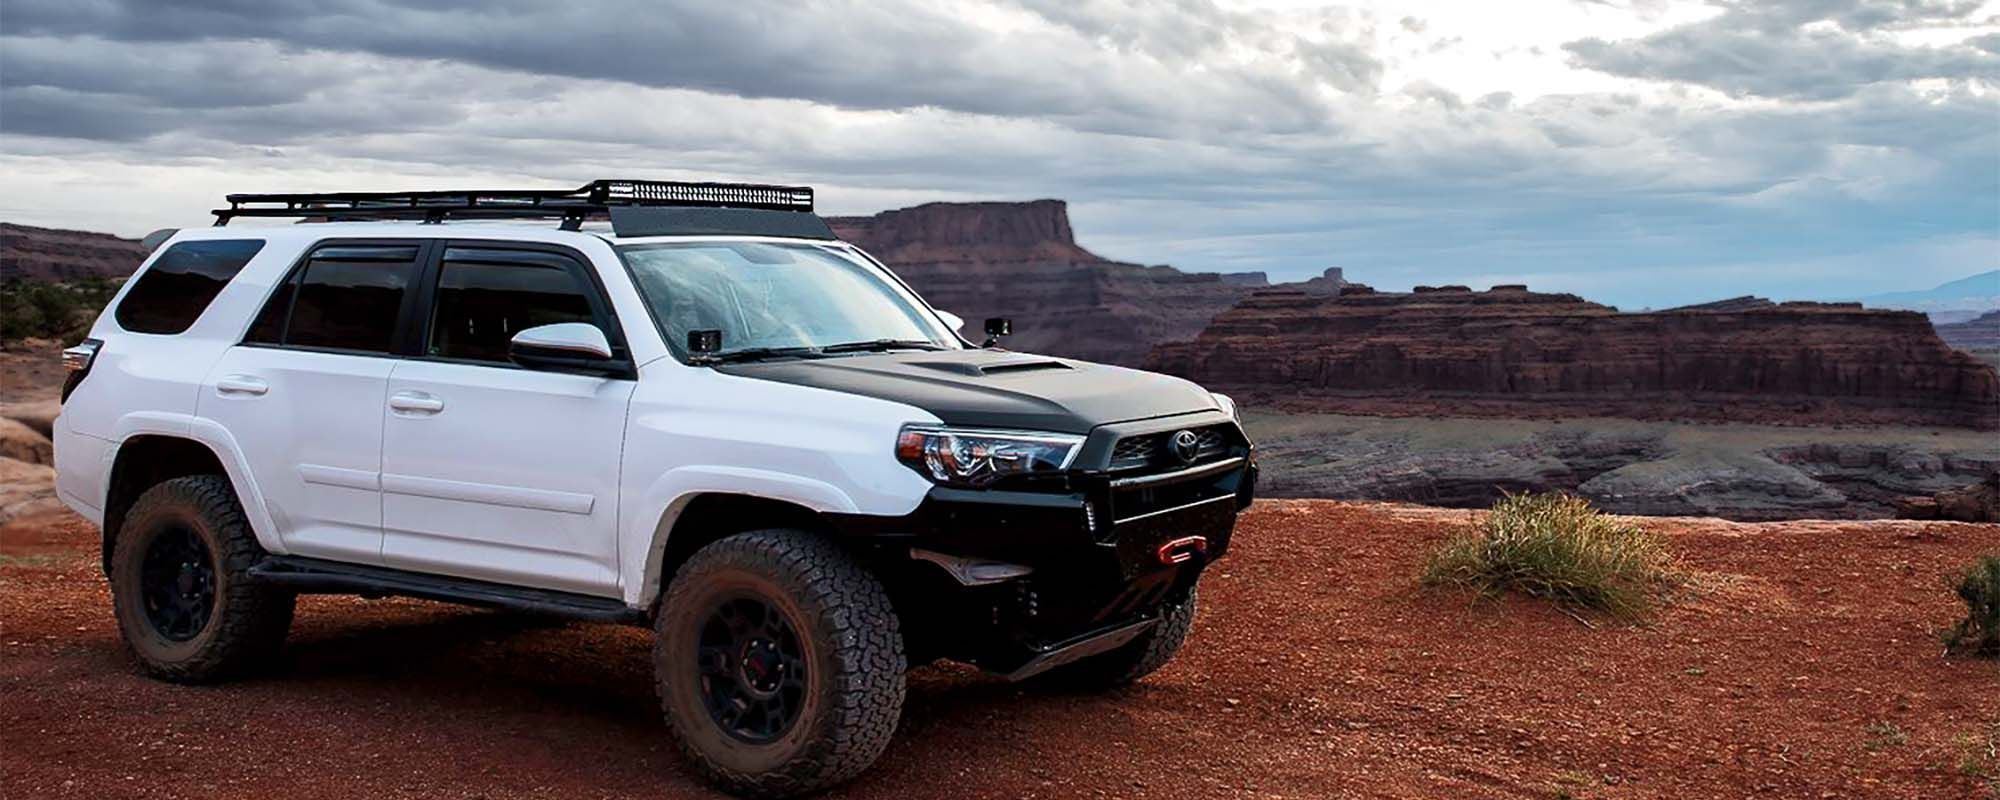 Pin by Alex Odin on beauty and harmony 4runner Roof rack